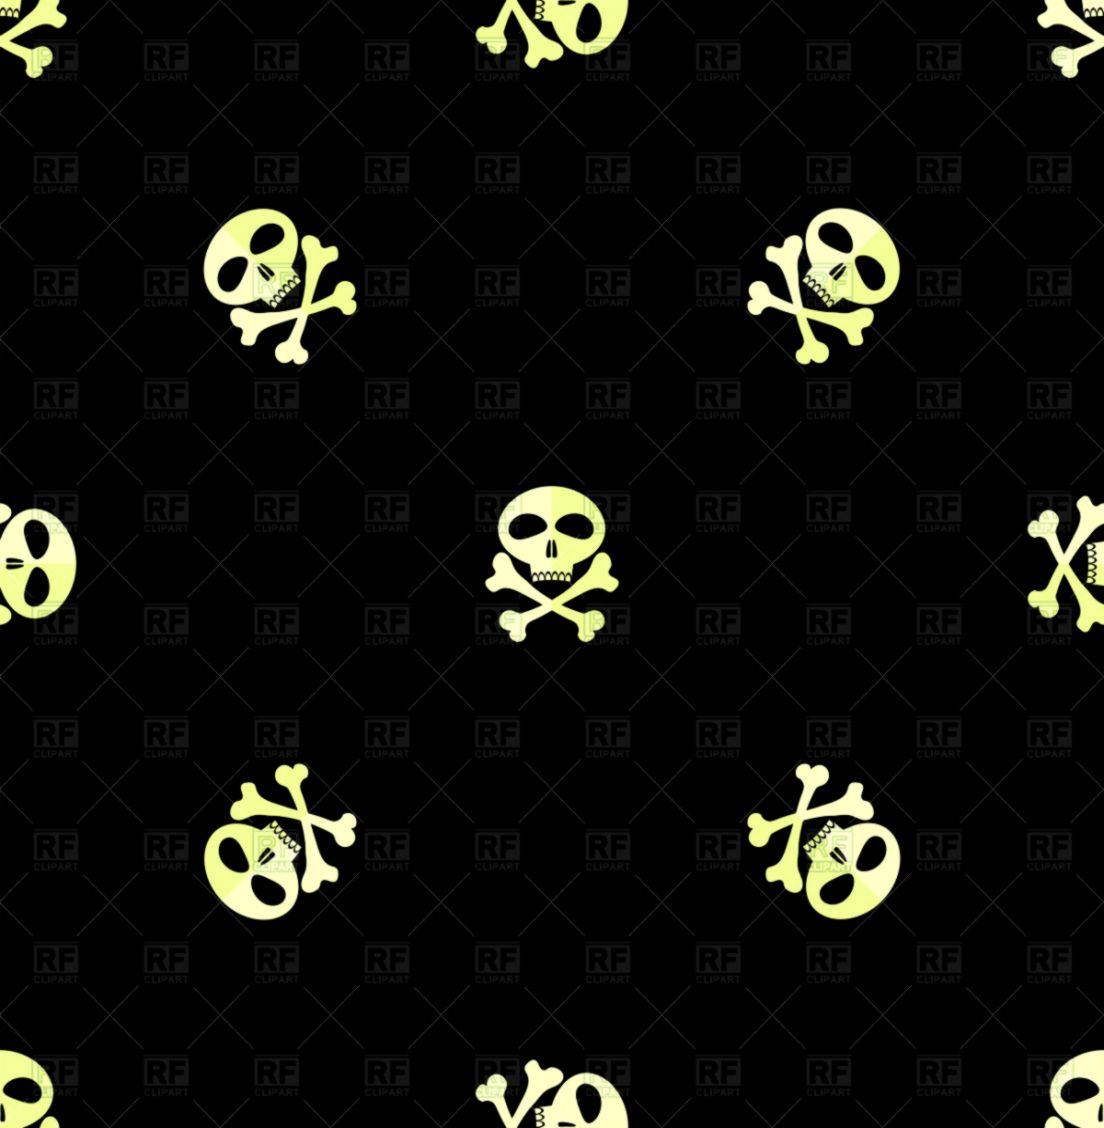 Pirate Skull Wallpaper Android Wallpapers